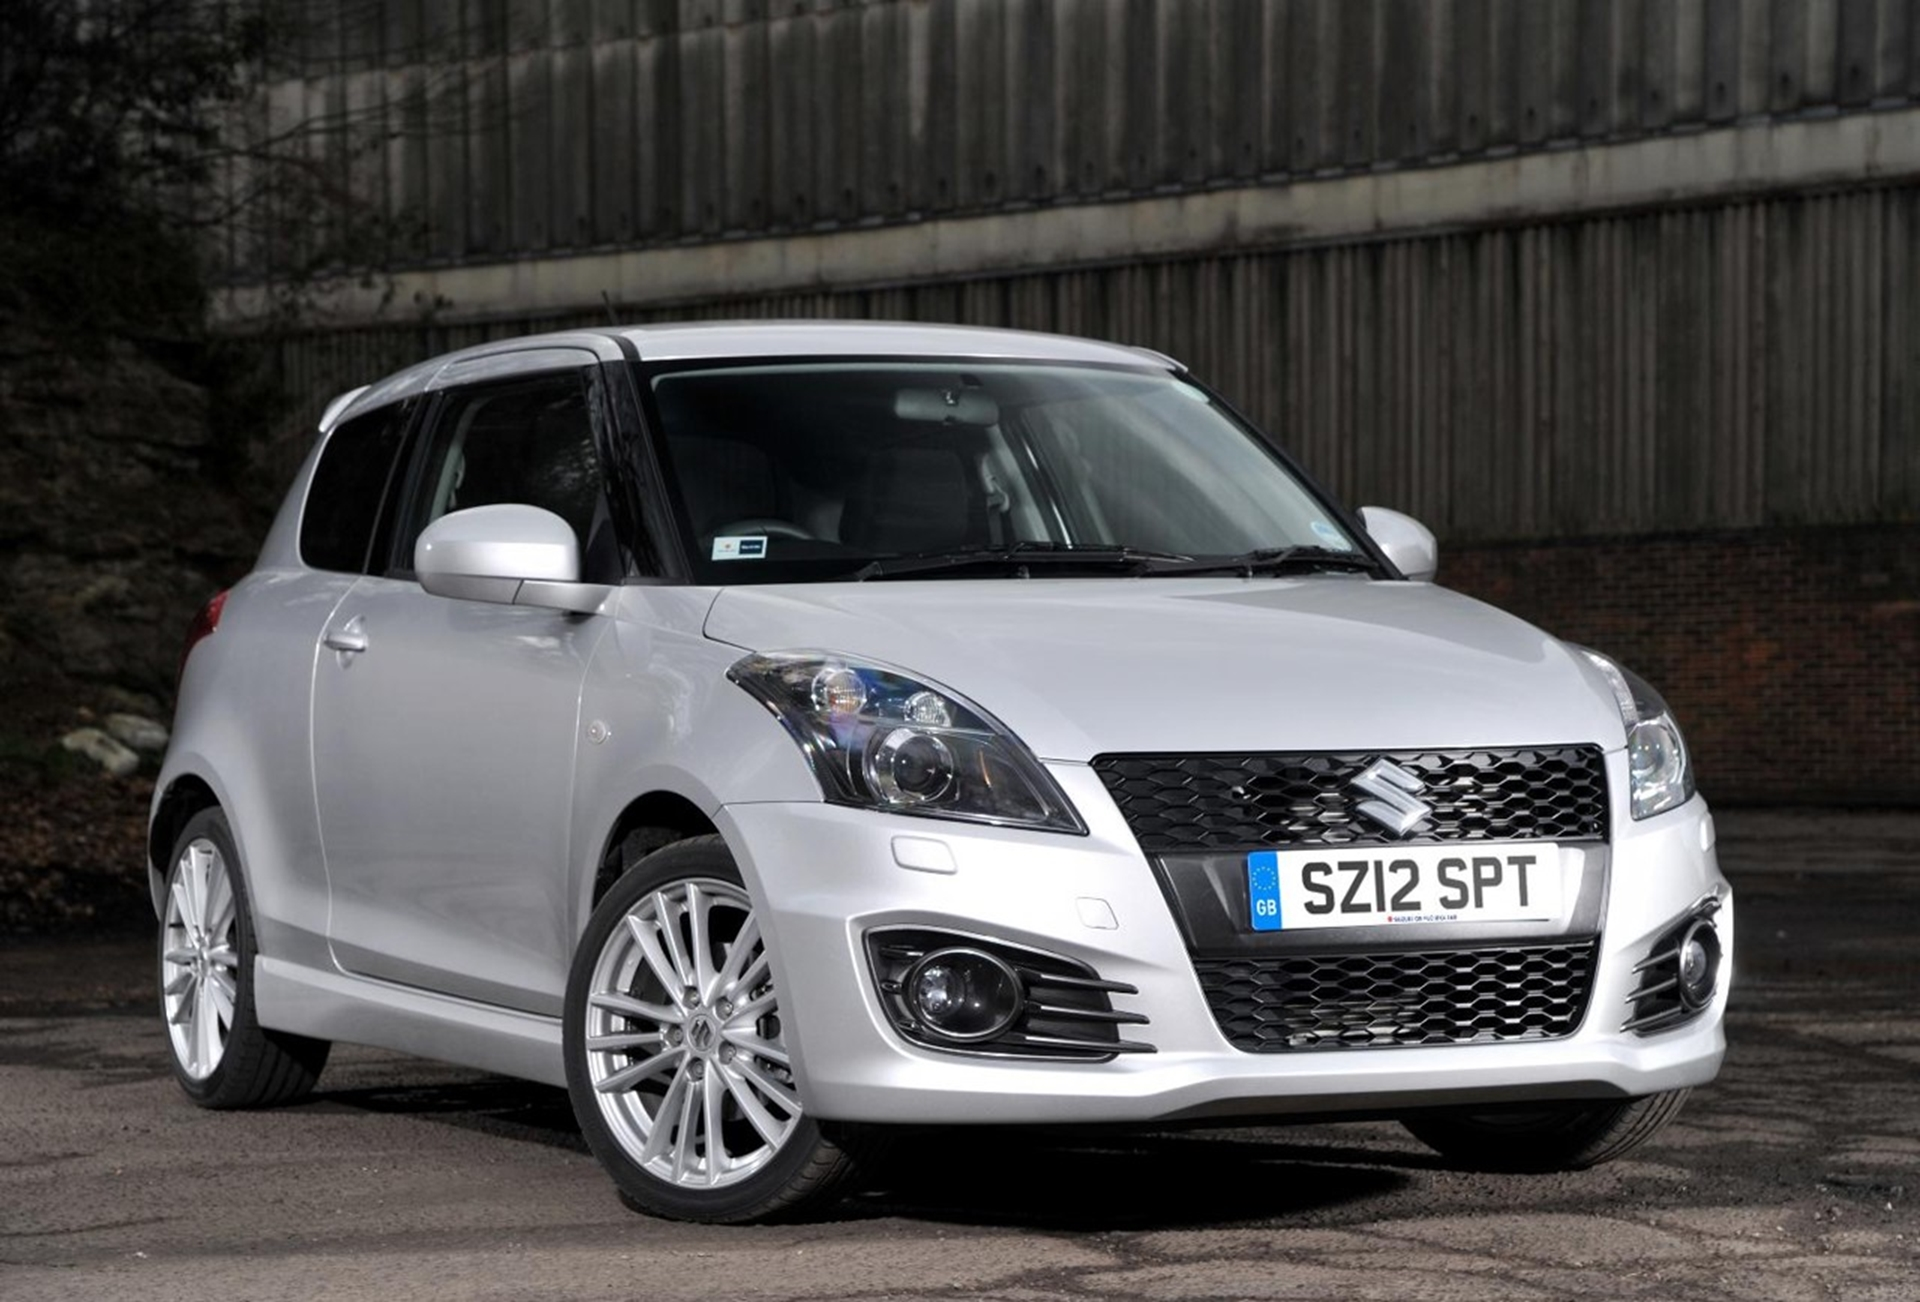 Following On From The Award Presented To Suzuki From Carbuyer.co.uk As The  U0027Best Hot Hatchback For 2012u0027, Suzuki Is Pleased To Announce That The Swift  Sport ...